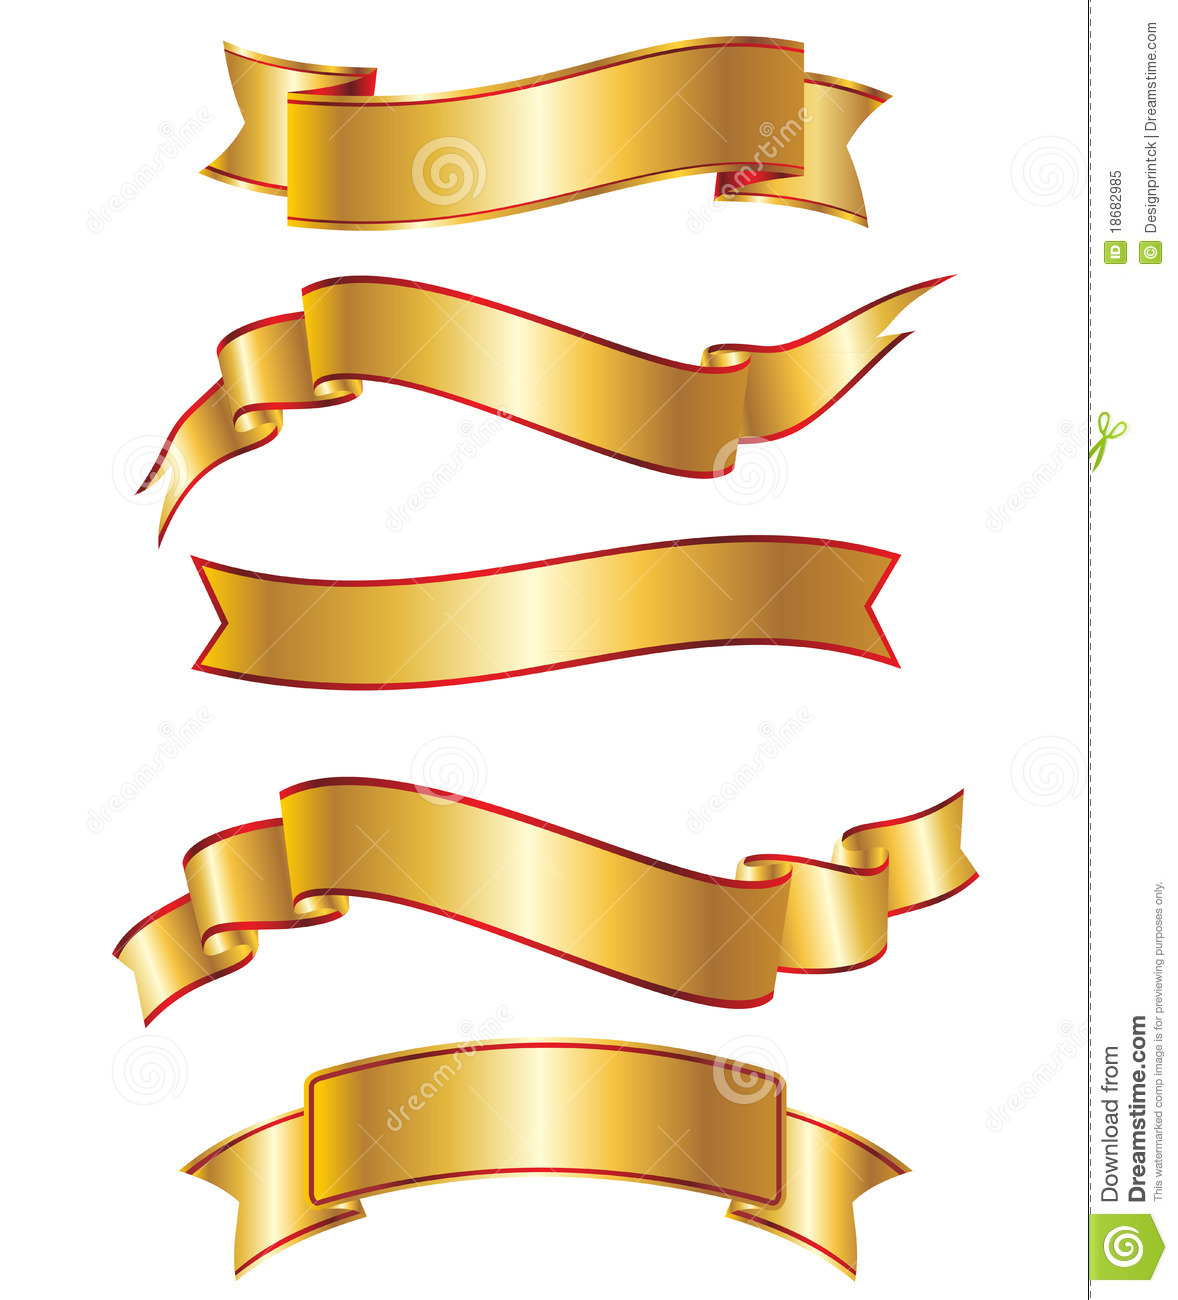 Contoh Banner: Gold Ribbon Banner Collection Set Royalty Free Stock Photo